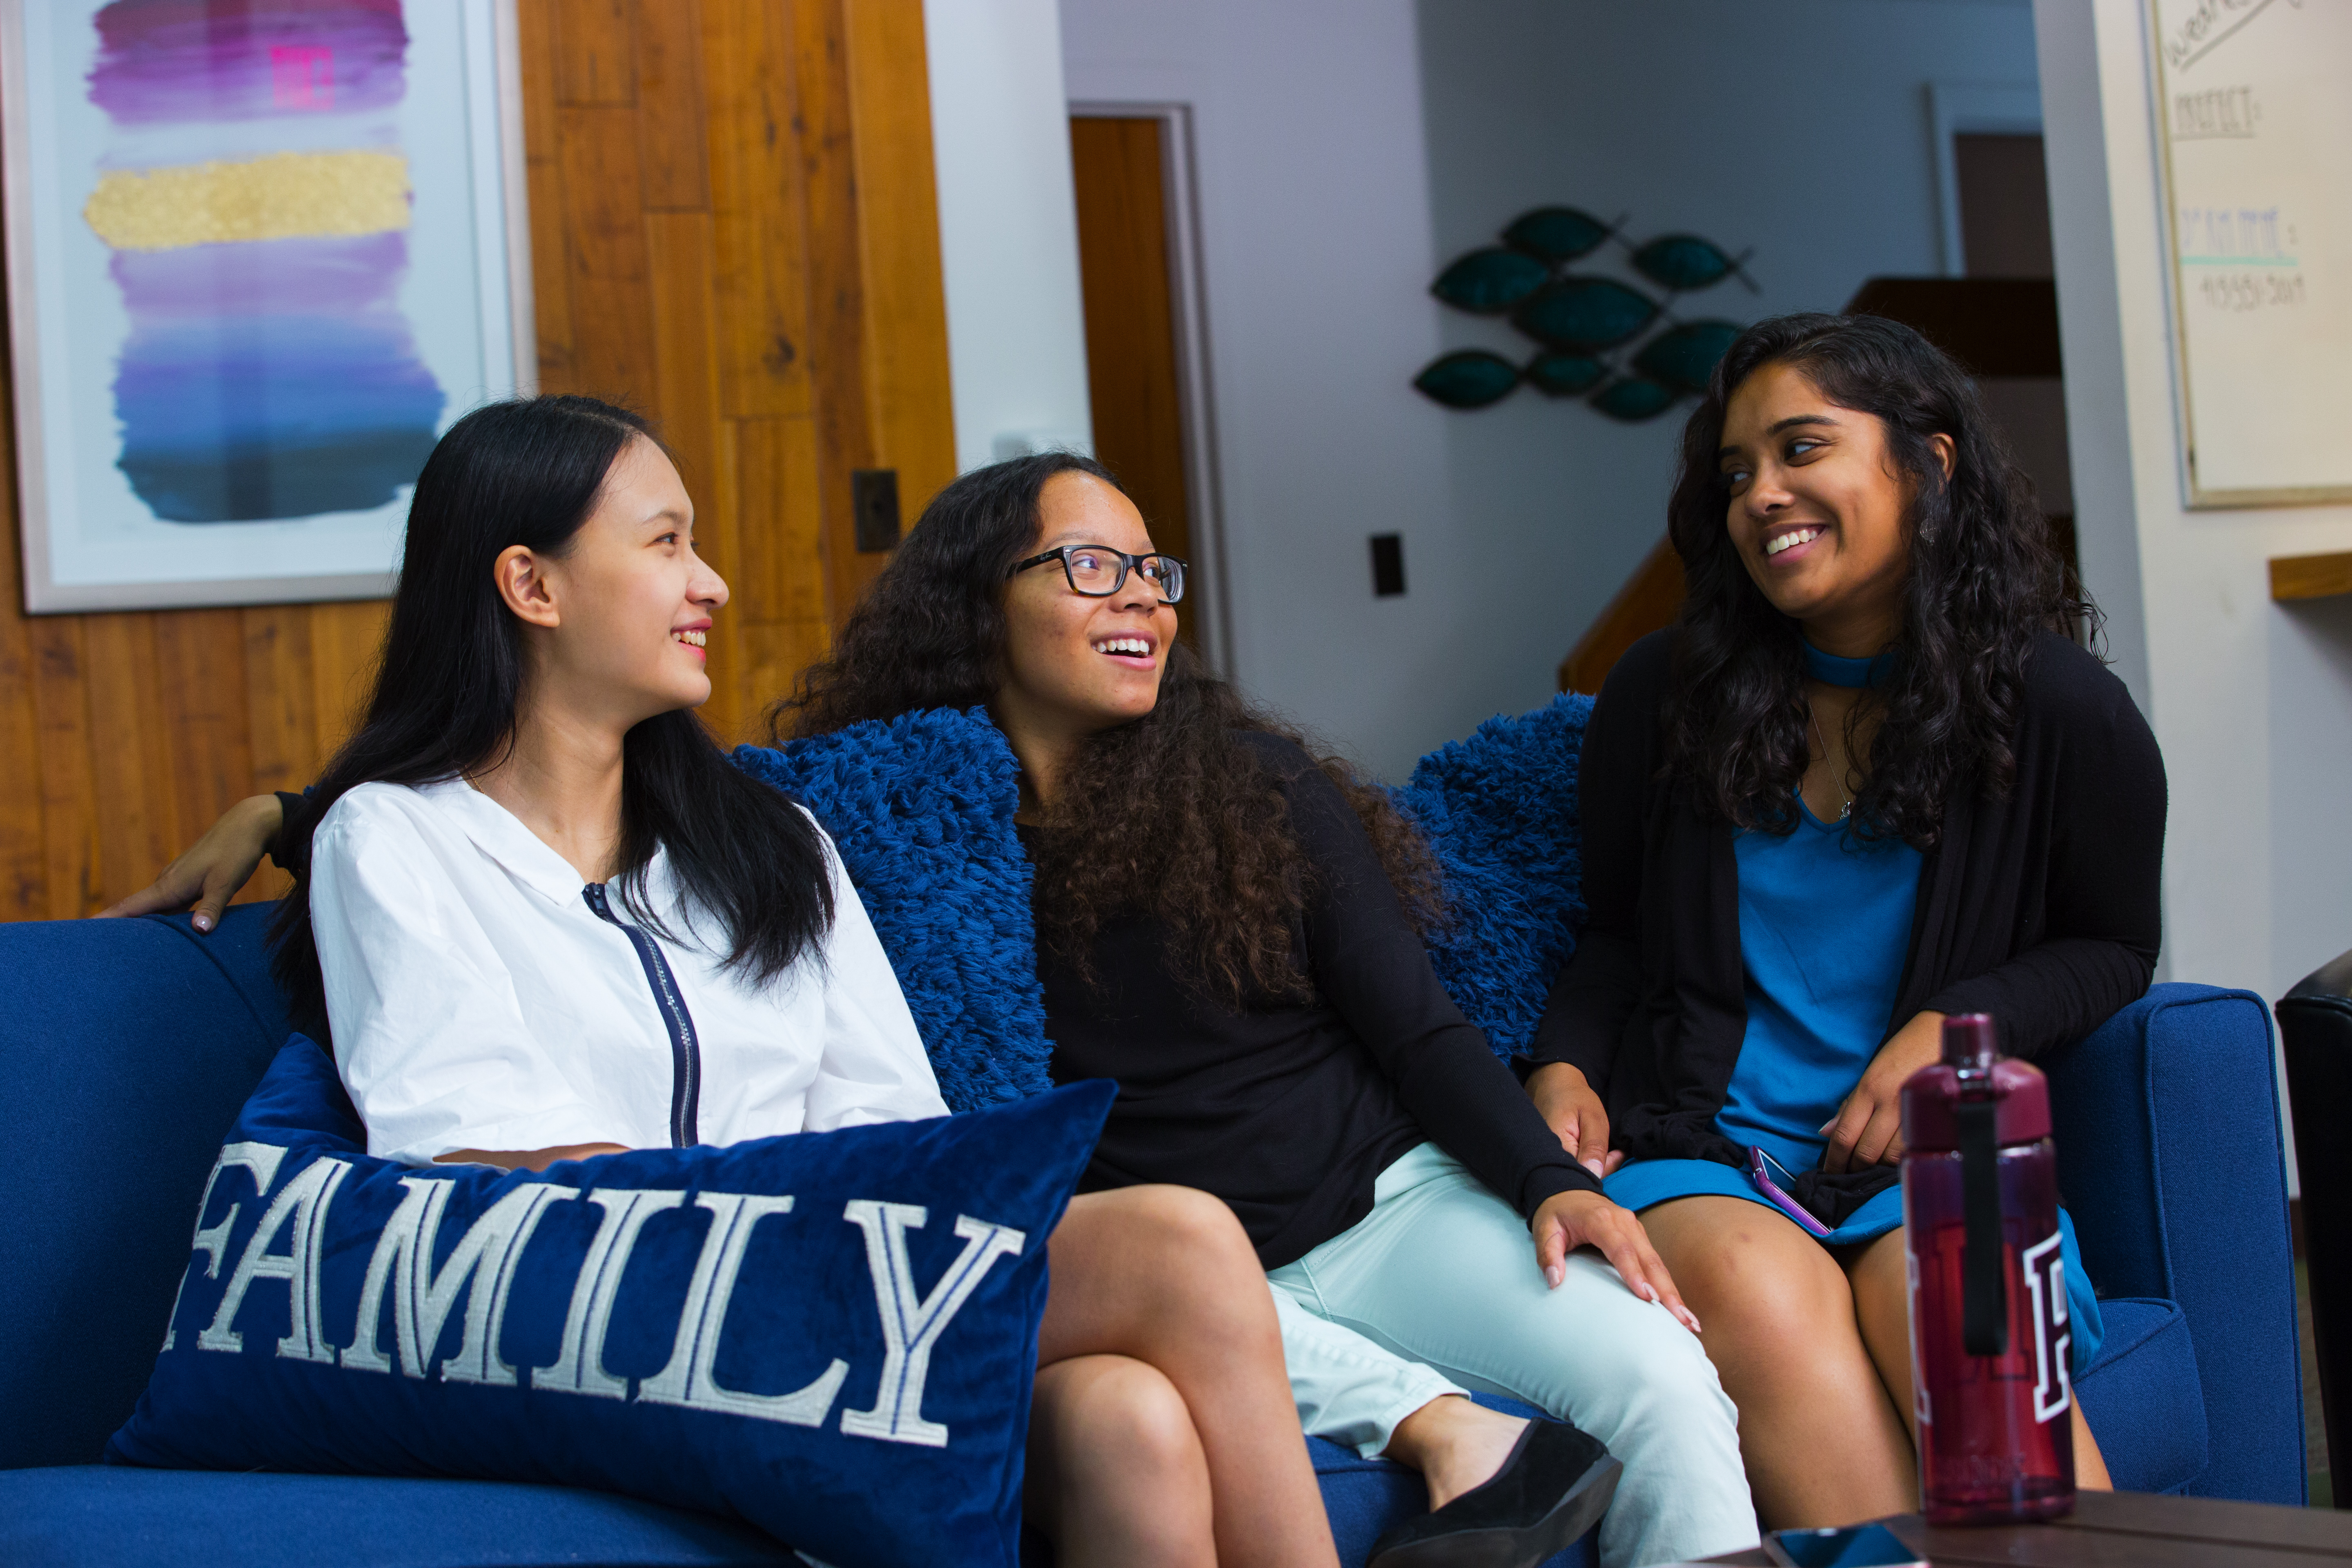 Boarding students talking on a couch